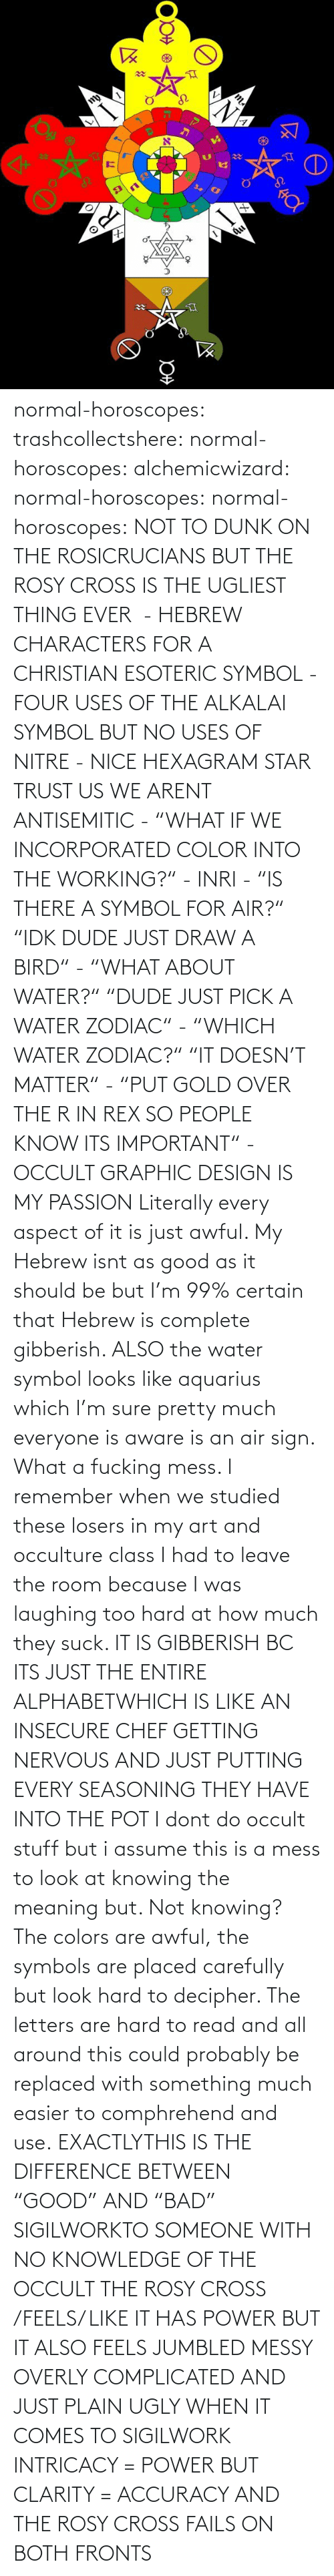 "normal: normal-horoscopes:  trashcollectshere: normal-horoscopes:   alchemicwizard:  normal-horoscopes:  normal-horoscopes: NOT TO DUNK ON THE ROSICRUCIANS BUT THE ROSY CROSS IS THE UGLIEST THING EVER  - HEBREW CHARACTERS FOR A CHRISTIAN ESOTERIC SYMBOL - FOUR USES OF THE ALKALAI SYMBOL BUT NO USES OF NITRE - NICE HEXAGRAM STAR TRUST US WE ARENT ANTISEMITIC - ""WHAT IF WE INCORPORATED COLOR INTO THE WORKING?"" - INRI - ""IS THERE A SYMBOL FOR AIR?"" ""IDK DUDE JUST DRAW A BIRD"" - ""WHAT ABOUT WATER?"" ""DUDE JUST PICK A WATER ZODIAC"" - ""WHICH WATER ZODIAC?"" ""IT DOESN'T MATTER"" - ""PUT GOLD OVER THE R IN REX SO PEOPLE KNOW ITS IMPORTANT"" - OCCULT GRAPHIC DESIGN IS MY PASSION  Literally every aspect of it is just awful. My Hebrew isnt as good as it should be but I'm 99% certain that Hebrew is complete gibberish.  ALSO the water symbol looks like aquarius which I'm sure pretty much everyone is aware is an air sign. What a fucking mess.  I remember when we studied these losers in my art and occulture class I had to leave the room because I was laughing too hard at how much they suck.   IT IS GIBBERISH BC ITS JUST THE ENTIRE ALPHABETWHICH IS LIKE AN INSECURE CHEF GETTING NERVOUS AND JUST PUTTING EVERY SEASONING THEY HAVE INTO THE POT     I dont do occult stuff but i assume this is a mess to look at knowing the meaning but. Not knowing? The colors are awful, the symbols are placed carefully but look hard to decipher. The letters are hard to read and all around this could probably be replaced with something much easier to comphrehend and use.  EXACTLYTHIS IS THE DIFFERENCE BETWEEN ""GOOD"" AND ""BAD"" SIGILWORKTO SOMEONE WITH NO KNOWLEDGE OF THE OCCULT THE ROSY CROSS /FEELS/ LIKE IT HAS POWER BUT IT ALSO FEELS JUMBLED MESSY OVERLY COMPLICATED AND JUST PLAIN UGLY WHEN IT COMES TO SIGILWORK INTRICACY = POWER BUT CLARITY = ACCURACY AND THE ROSY CROSS FAILS ON BOTH FRONTS"